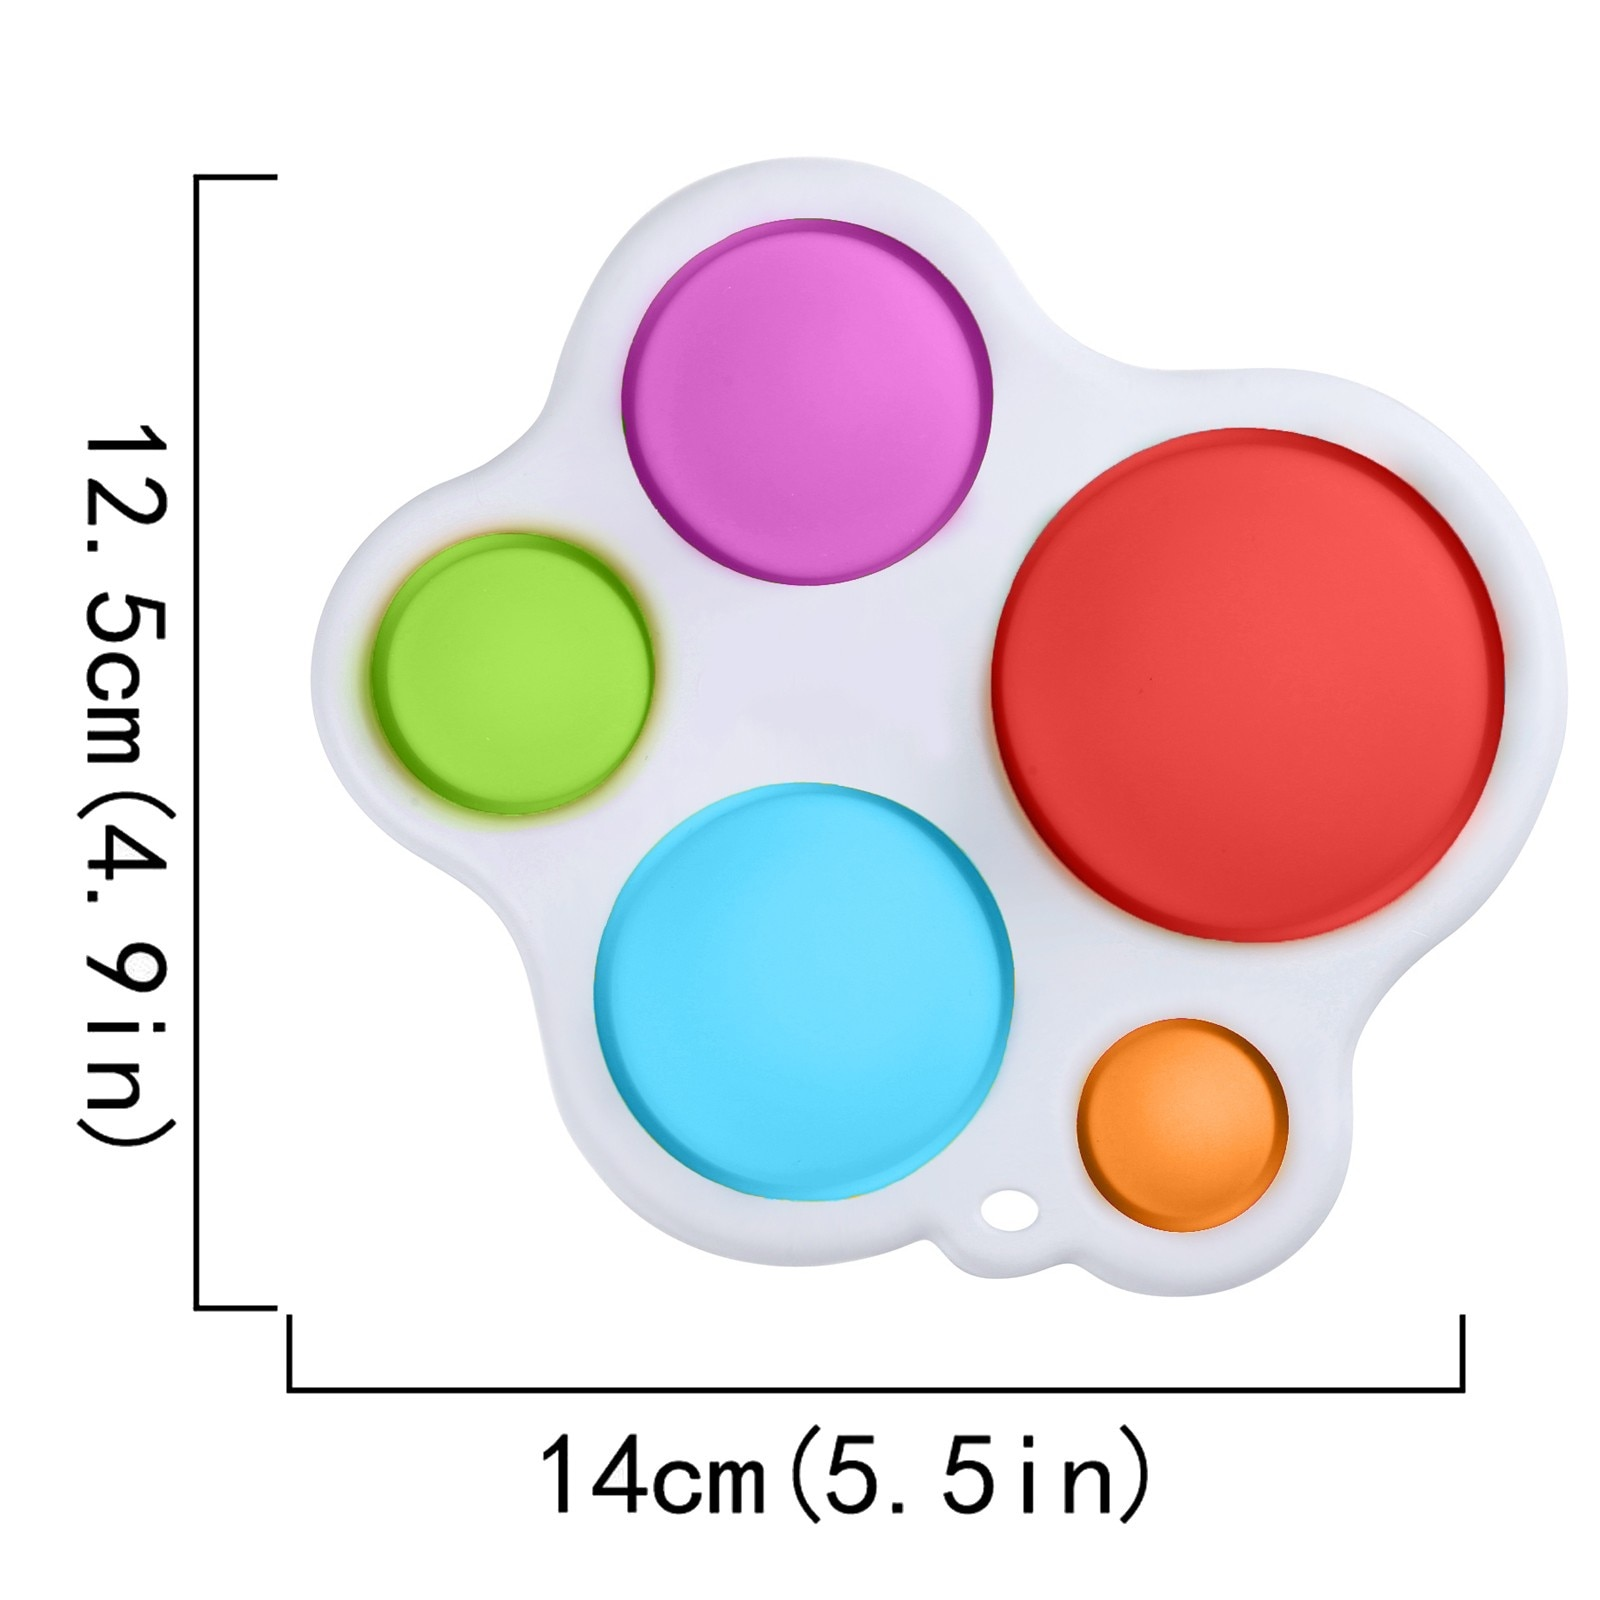 2021Simple Dimple Fidget Toys Popit Infant Early Education Intelligence Development And Intensive Training Toys simpel dimpel W* enlarge